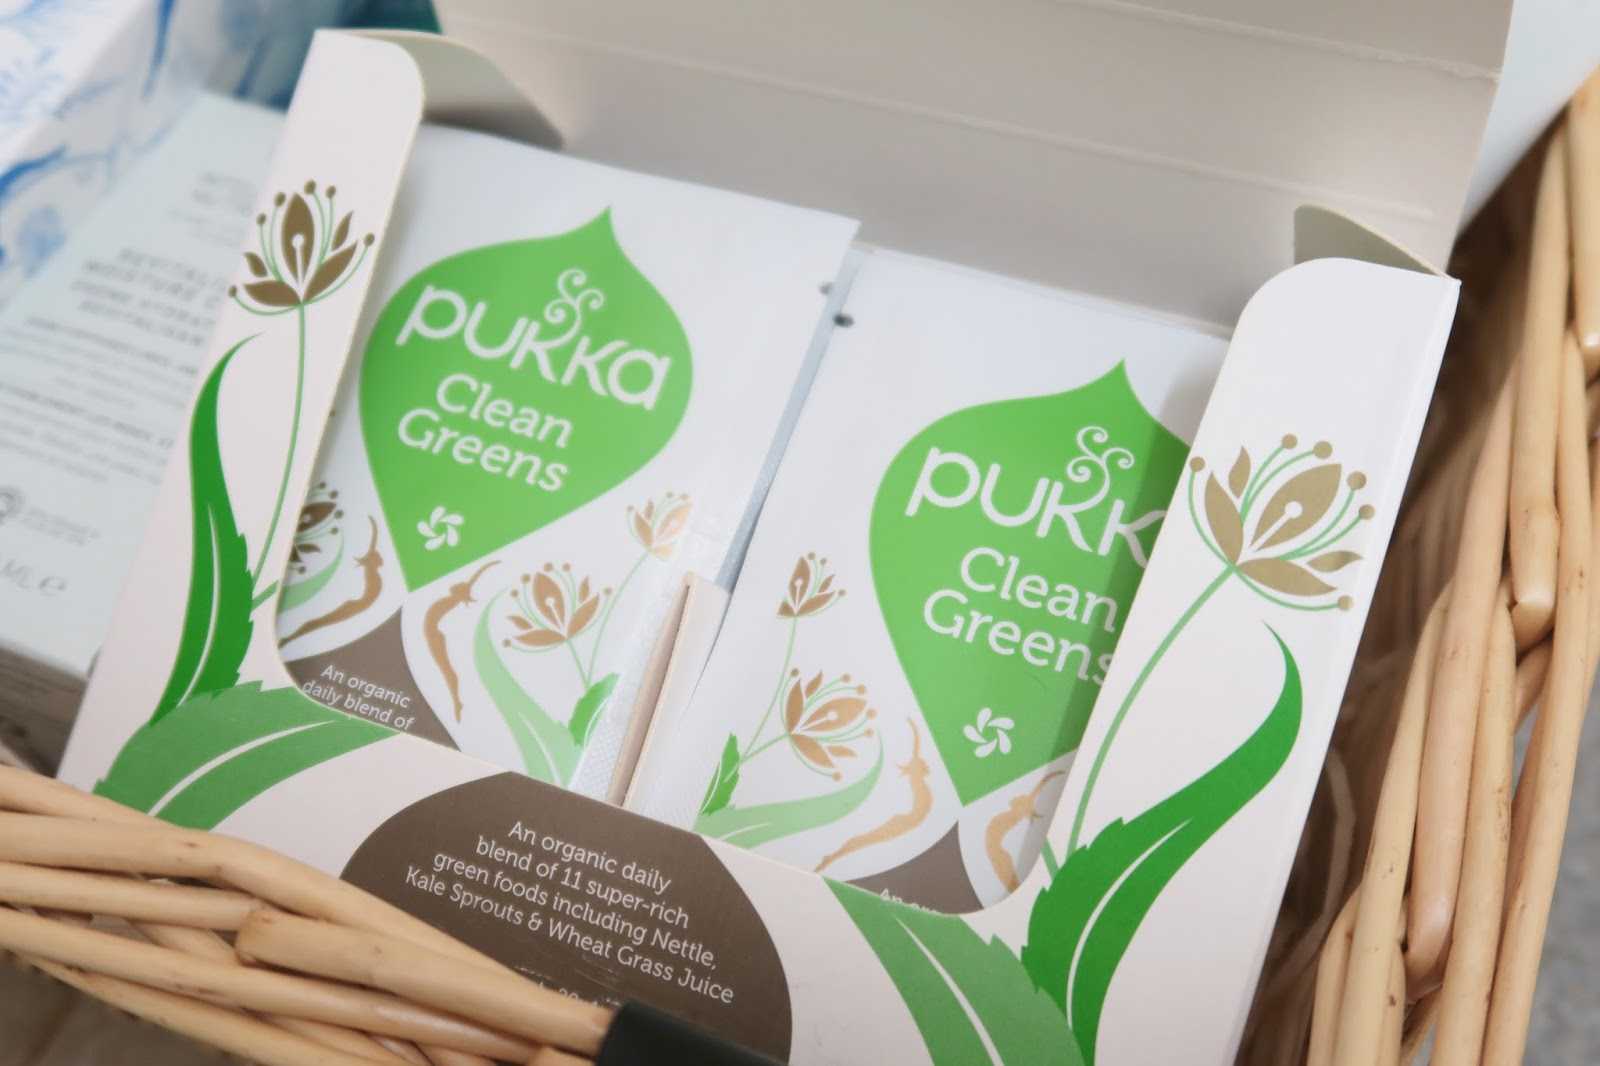 Soil Association Campaign for Clarity Pukka Clean Greens